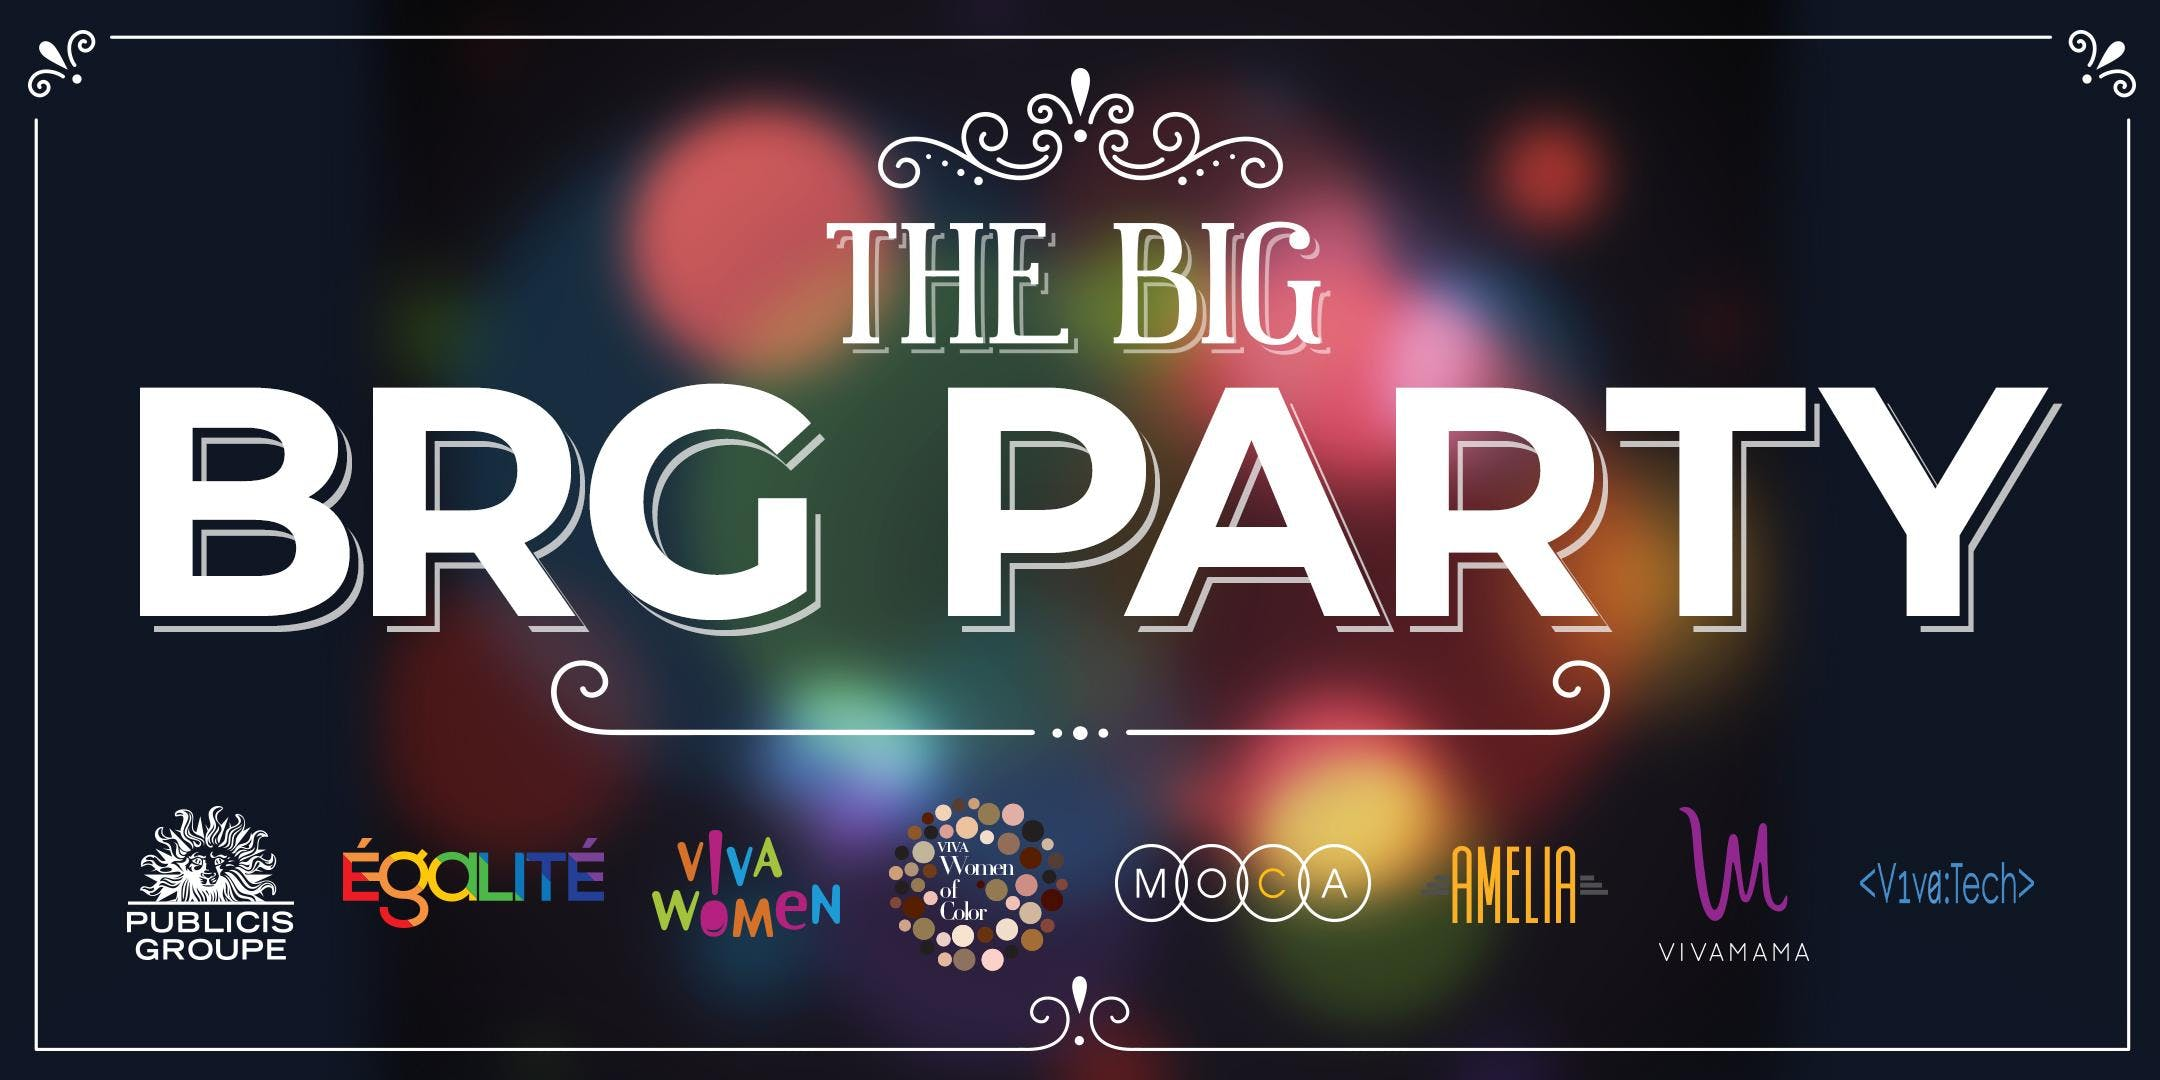 The Big BRG Holiday Party